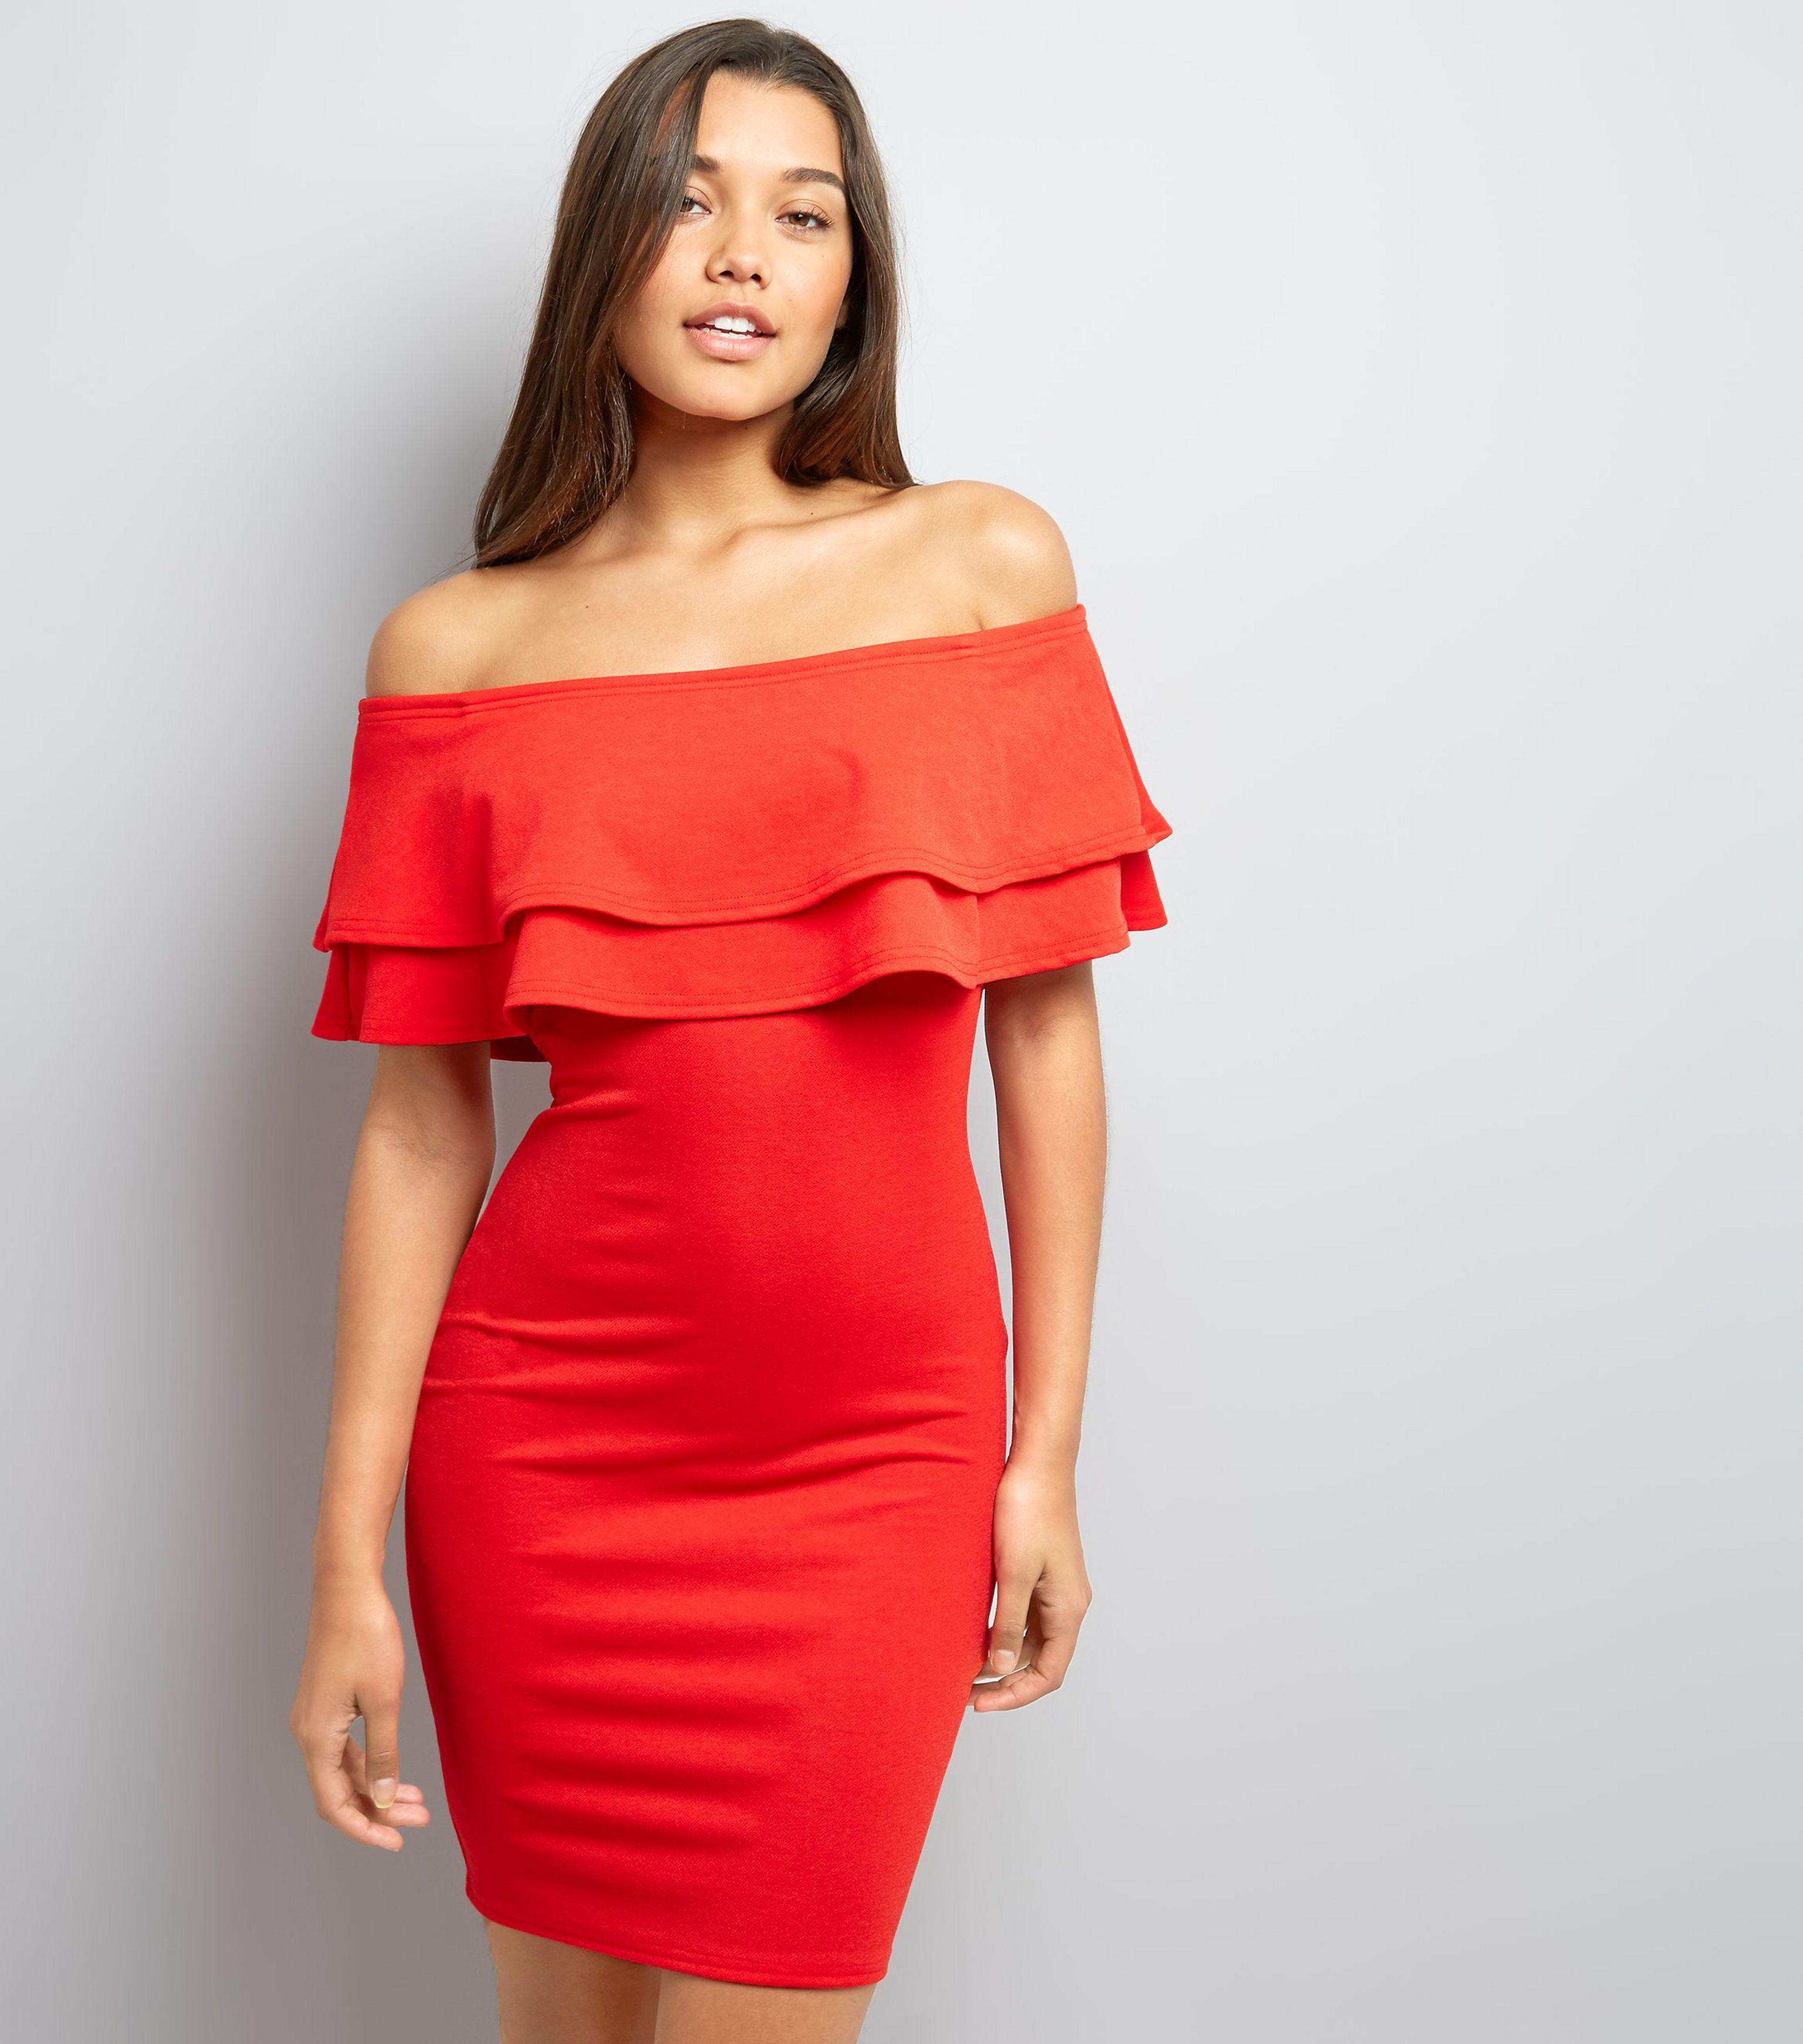 a308891736c0 New Look Tall Red Frill Trim Bardot Bodycon Dress in Red - Lyst